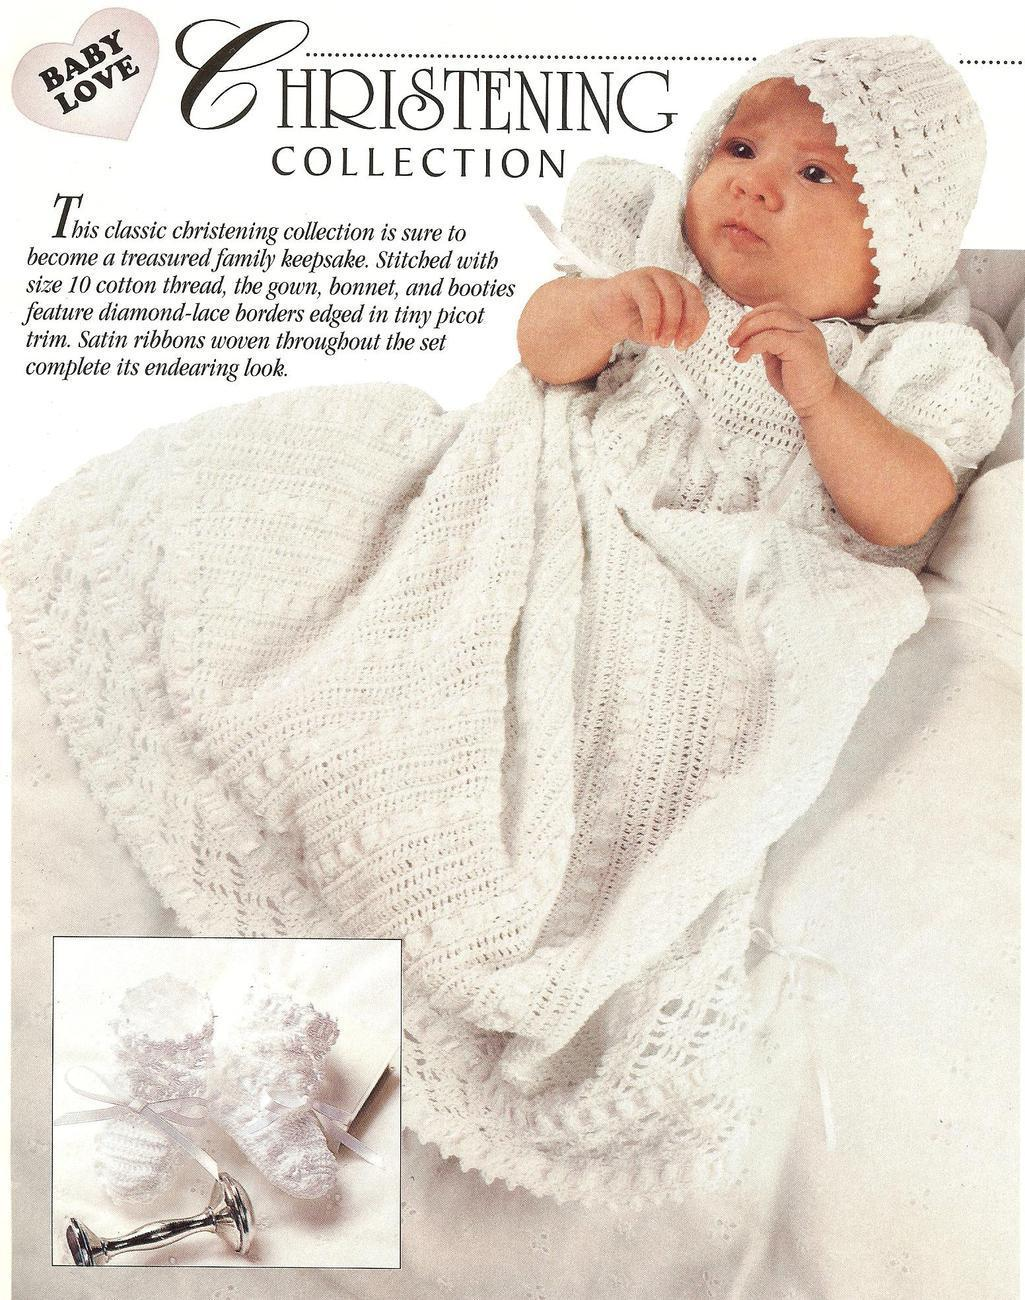 Christening Gownbonnet Booties Crochet And 50 Similar Items